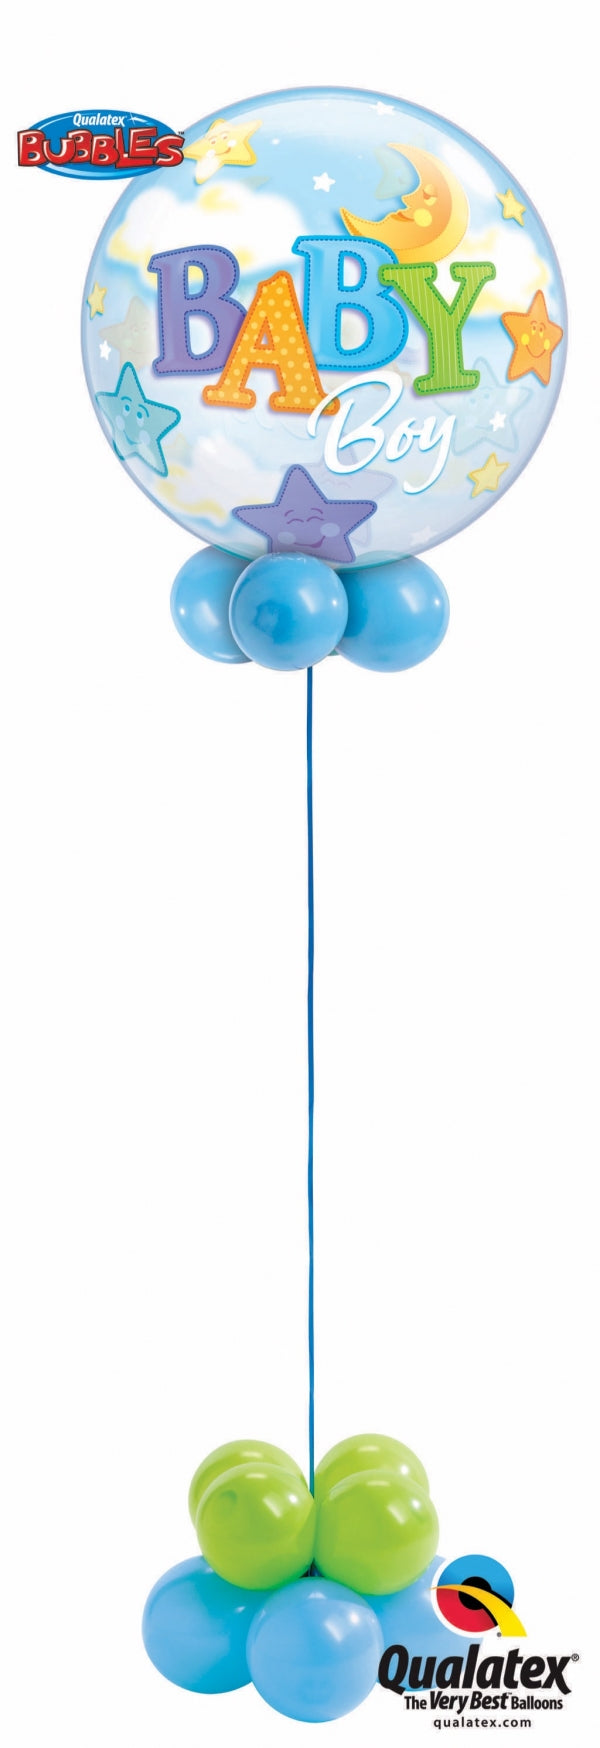 Baby Boy Stars and Moon Bubbles Balloon Centerpiece  4